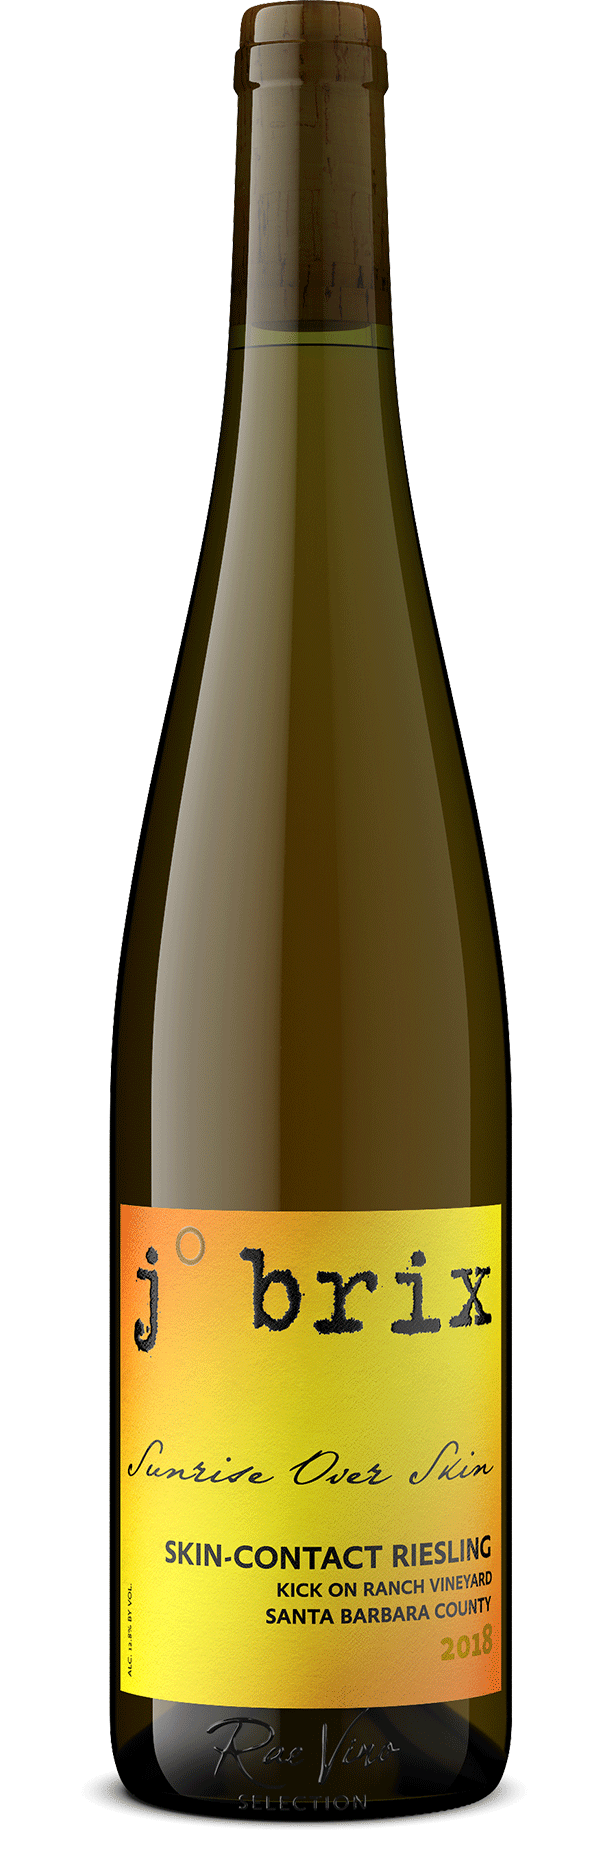 j. brix : 'Sunrise Over Skin' : Riesling | 2018